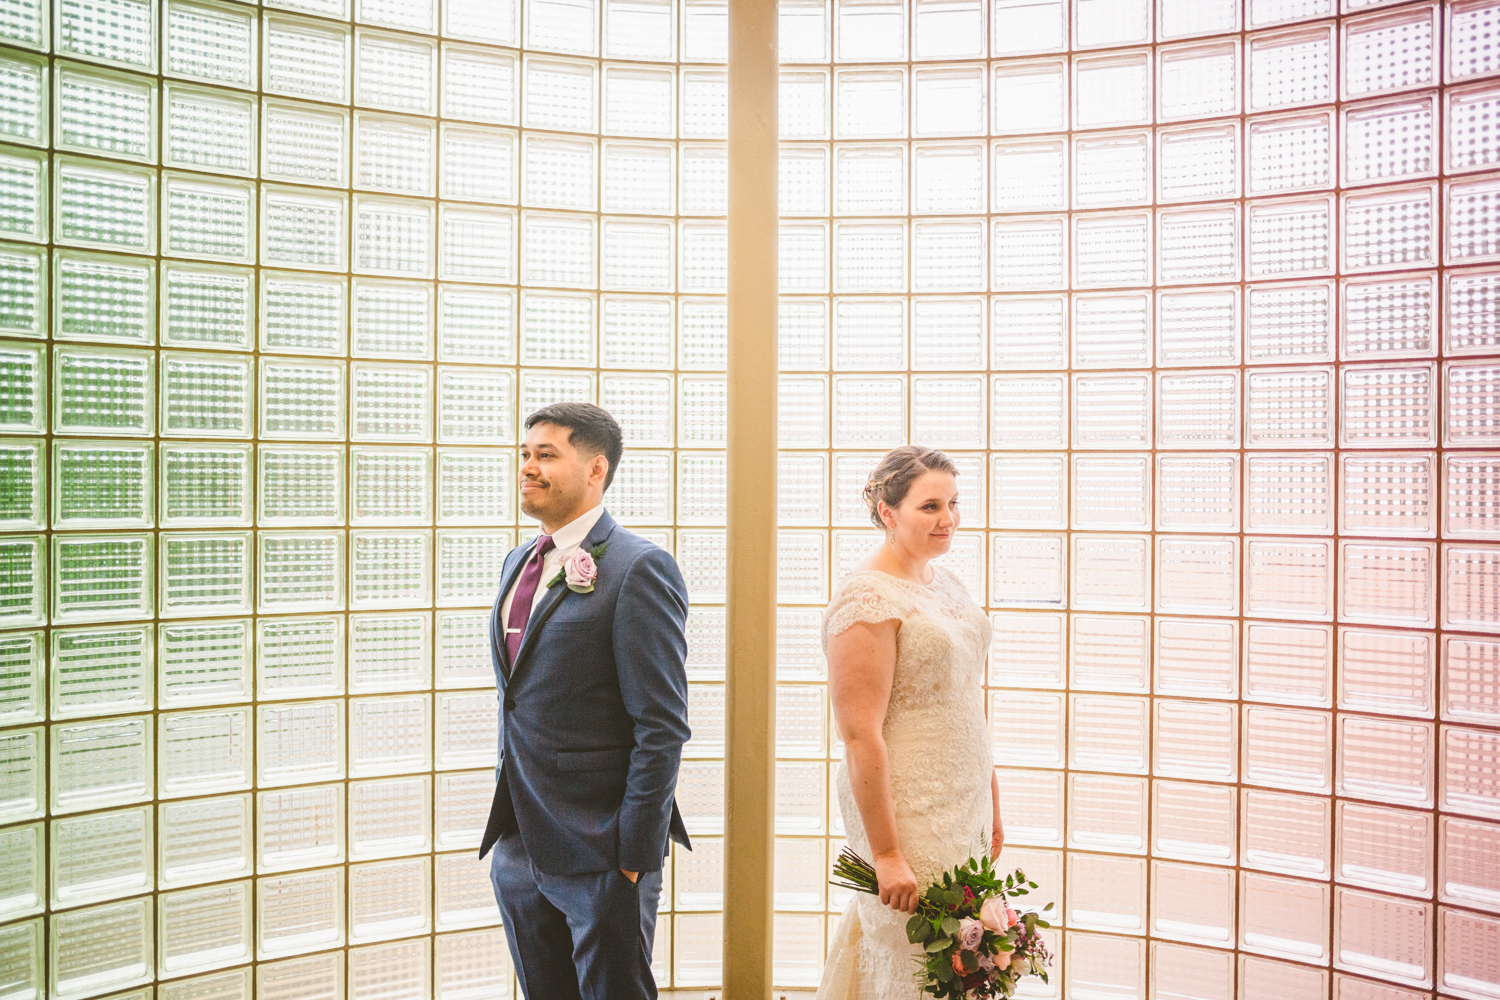 040 - creative green and pink portrait of bride and groom baltimore and washington dc wedding photographer nathan mitchell.jpg